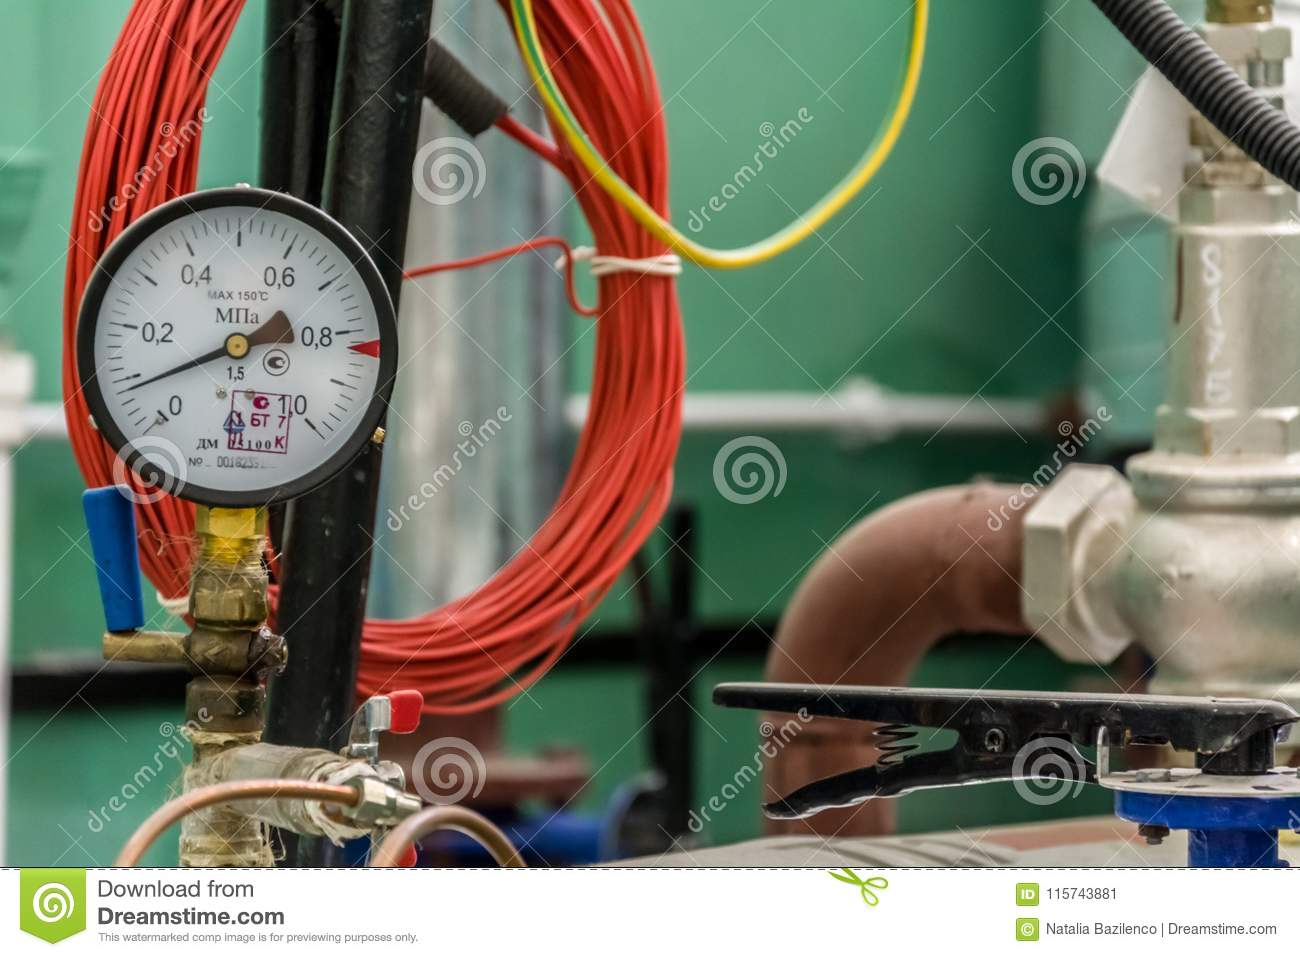 Manometer of pumping equipment of heating systems